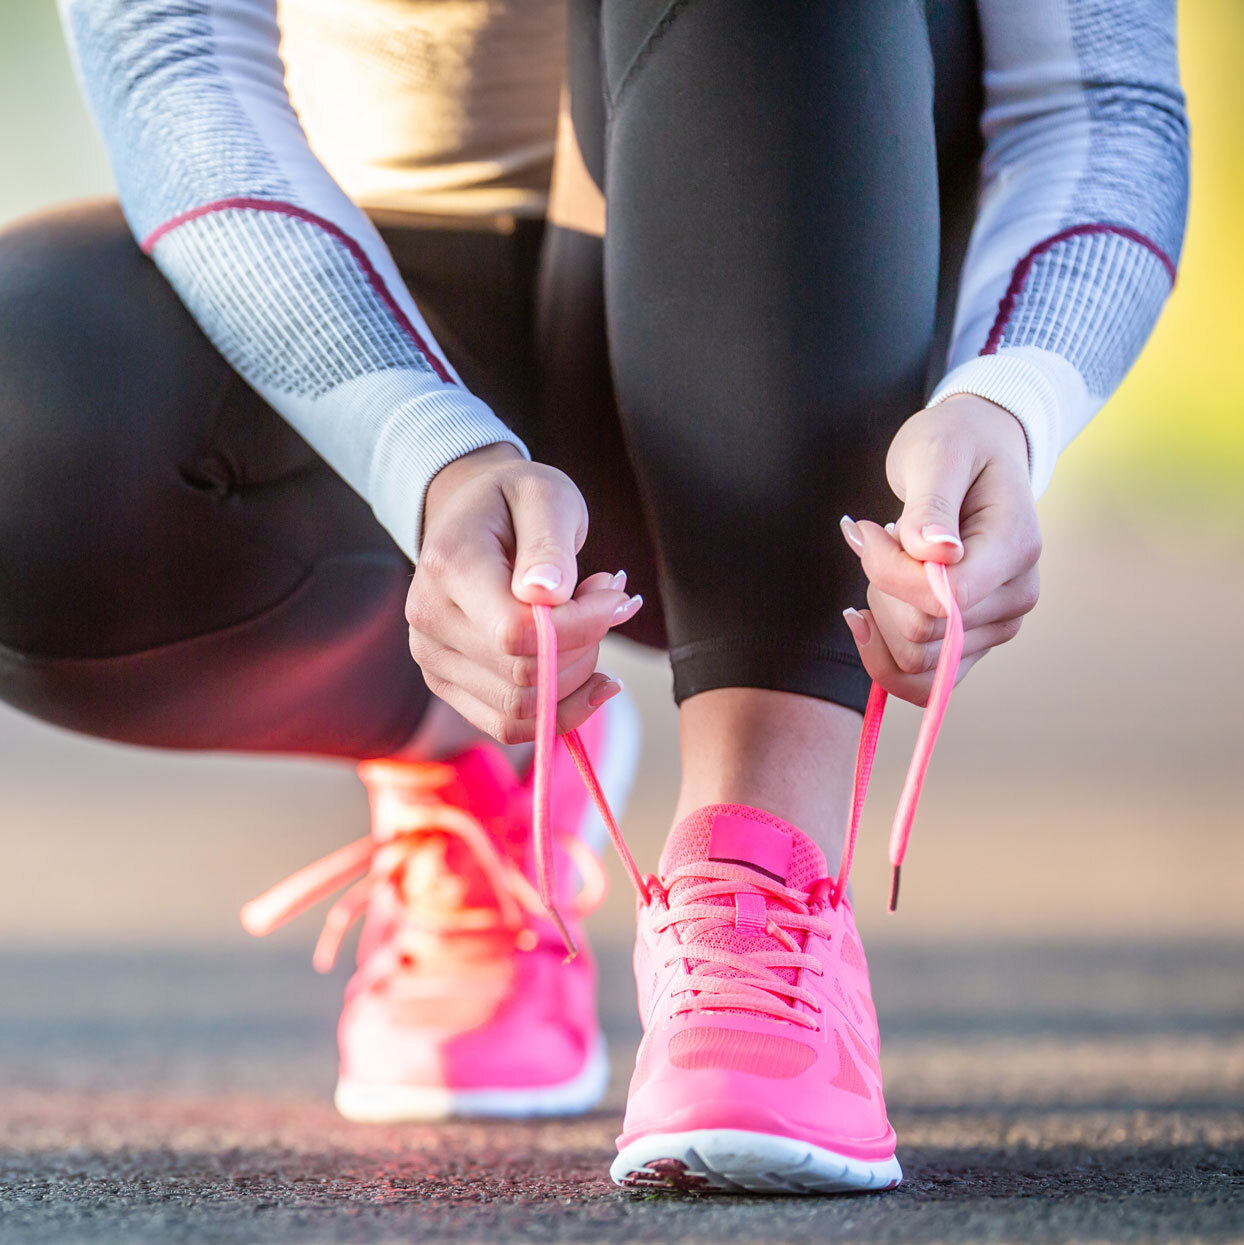 photo of woman lacing up pink running shoes outside